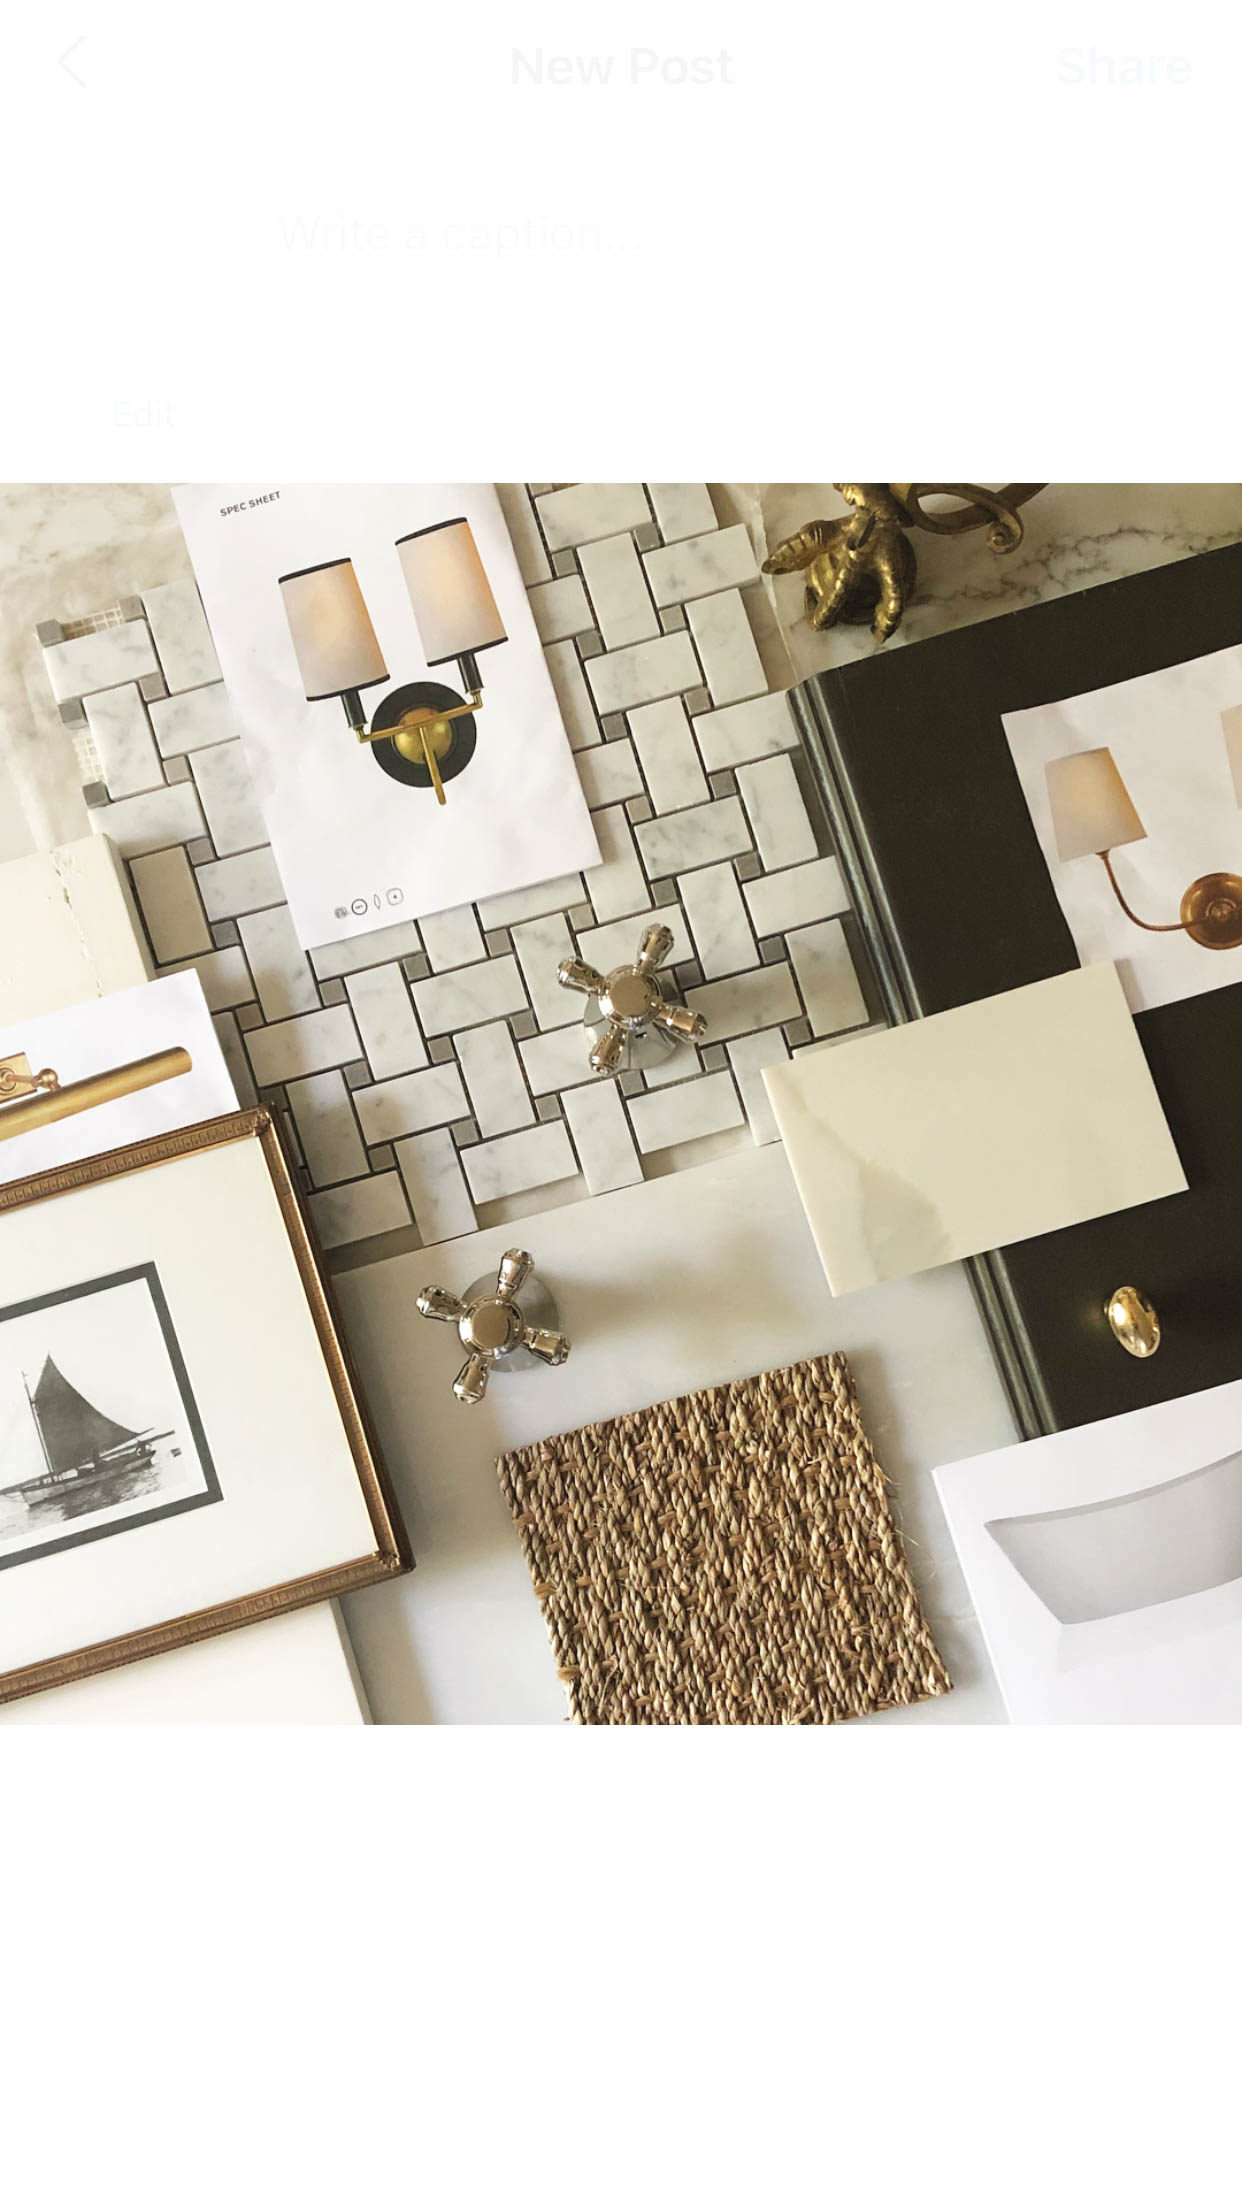 swatches of tile samples and other accessories